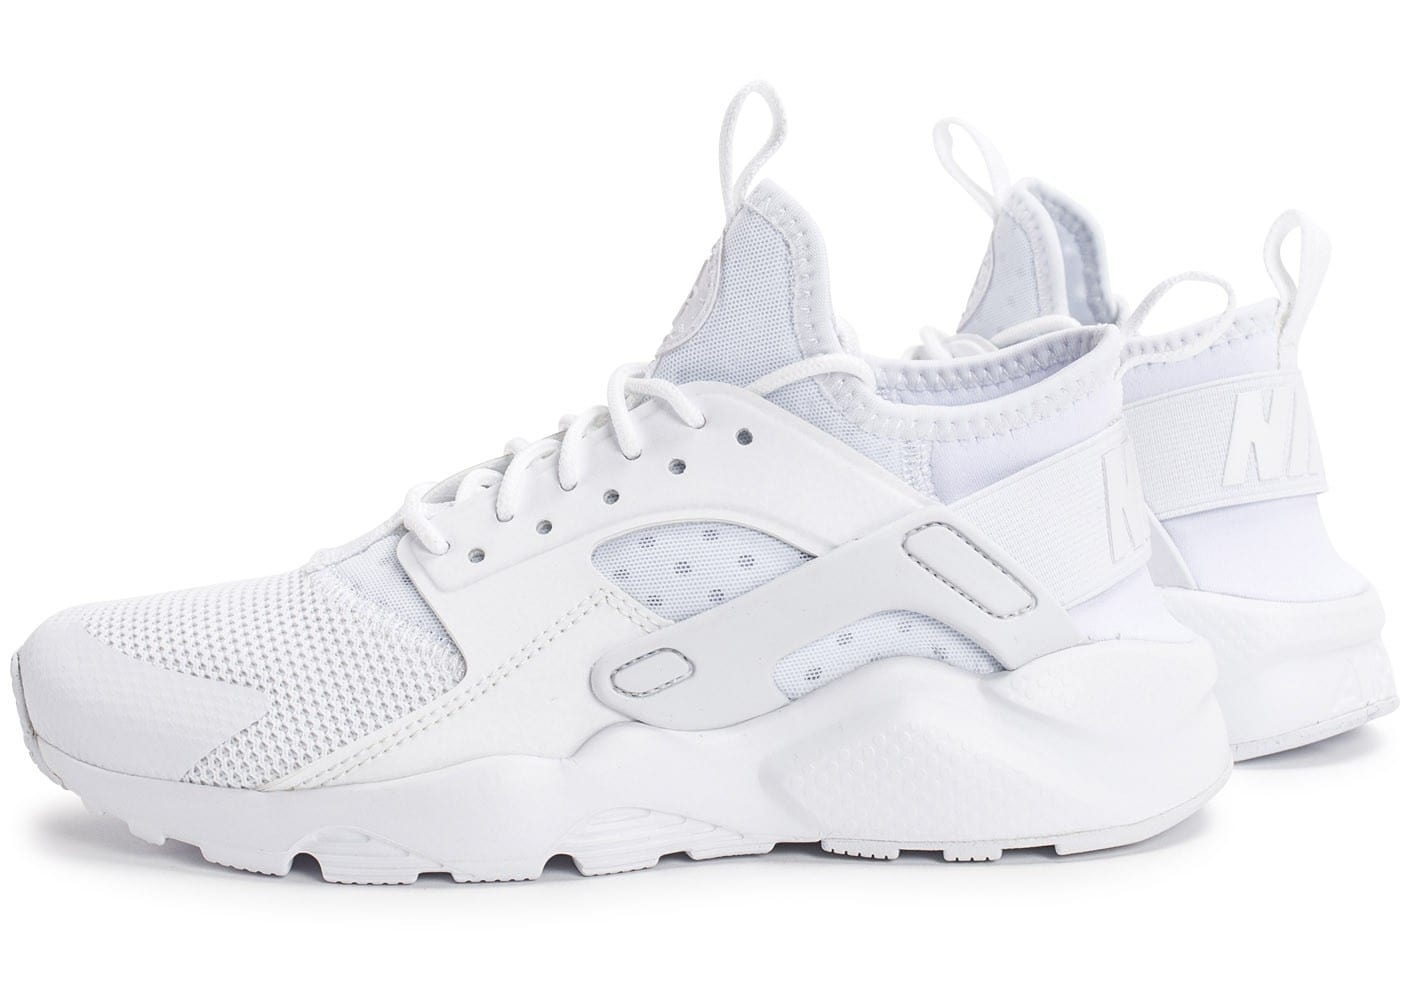 Ultra Baskets Run Cool Nike Chaussures Air Huarache Junior Blanche qn7wtUxR